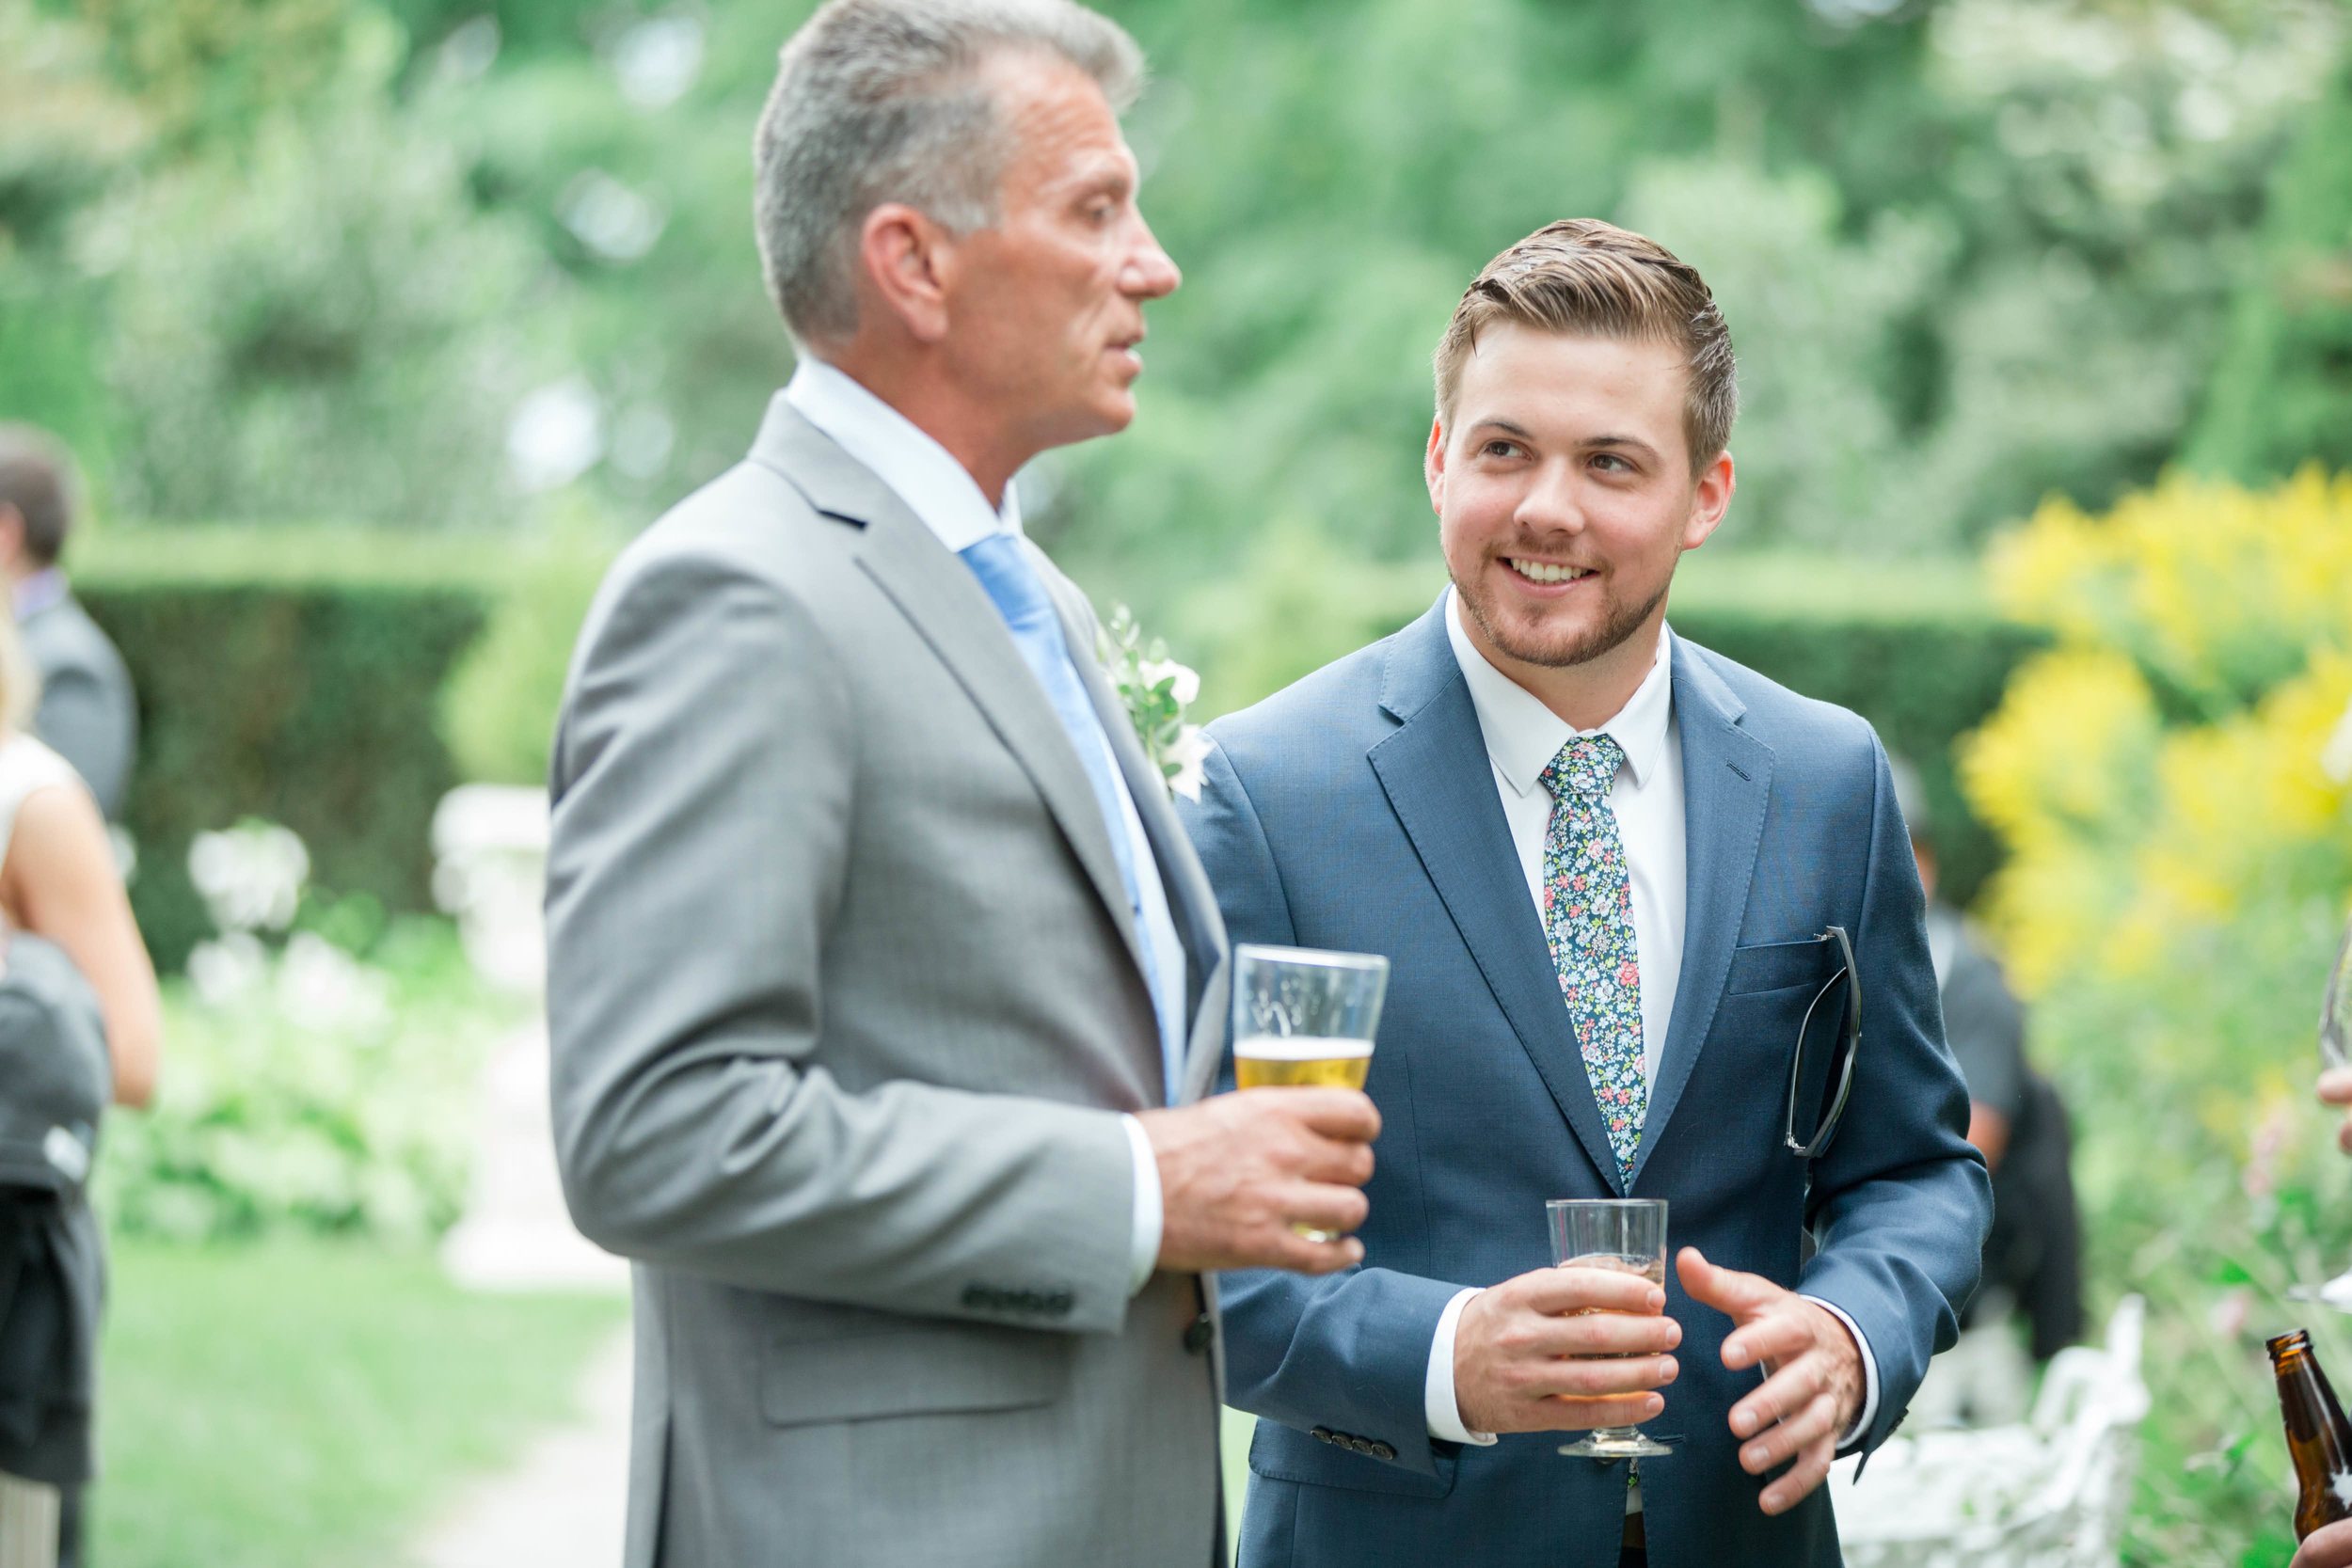 Ashley___Zac___Daniel_Ricci_Weddings___High_Res._Finals_460.jpg